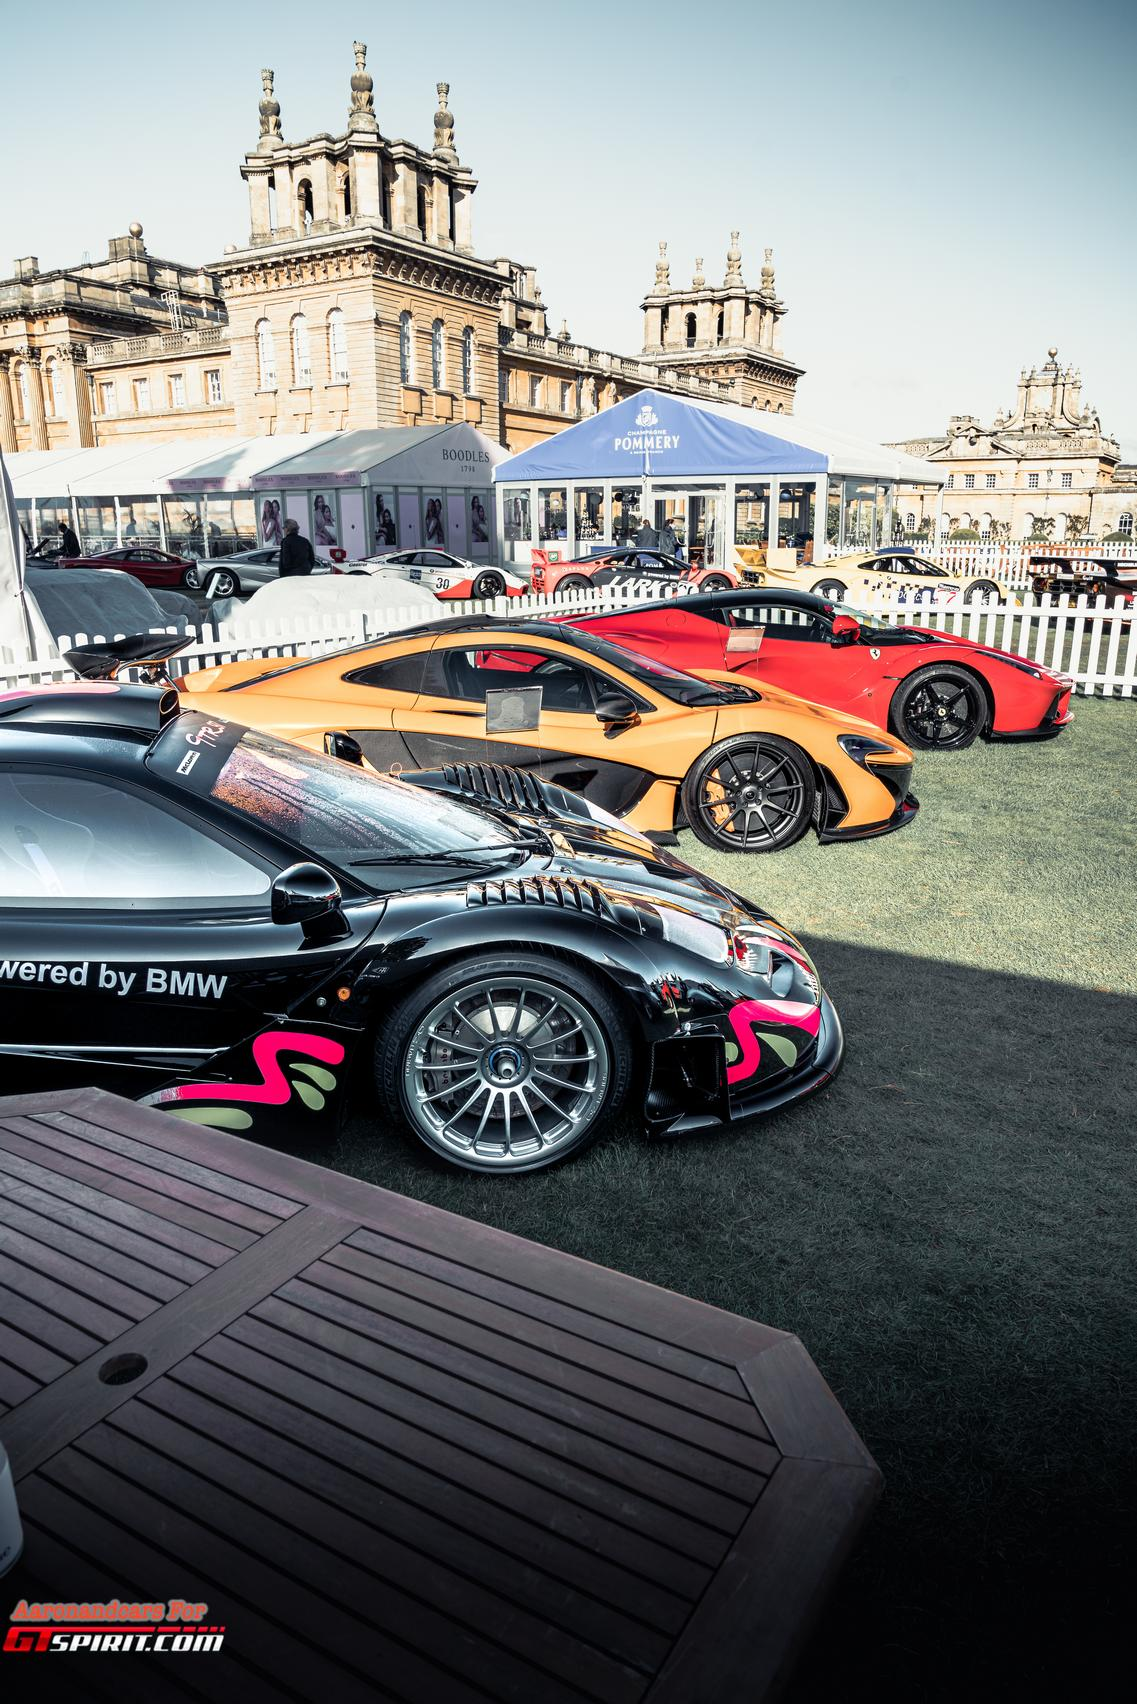 Salon Prive 2020 McLaren F1 GTR